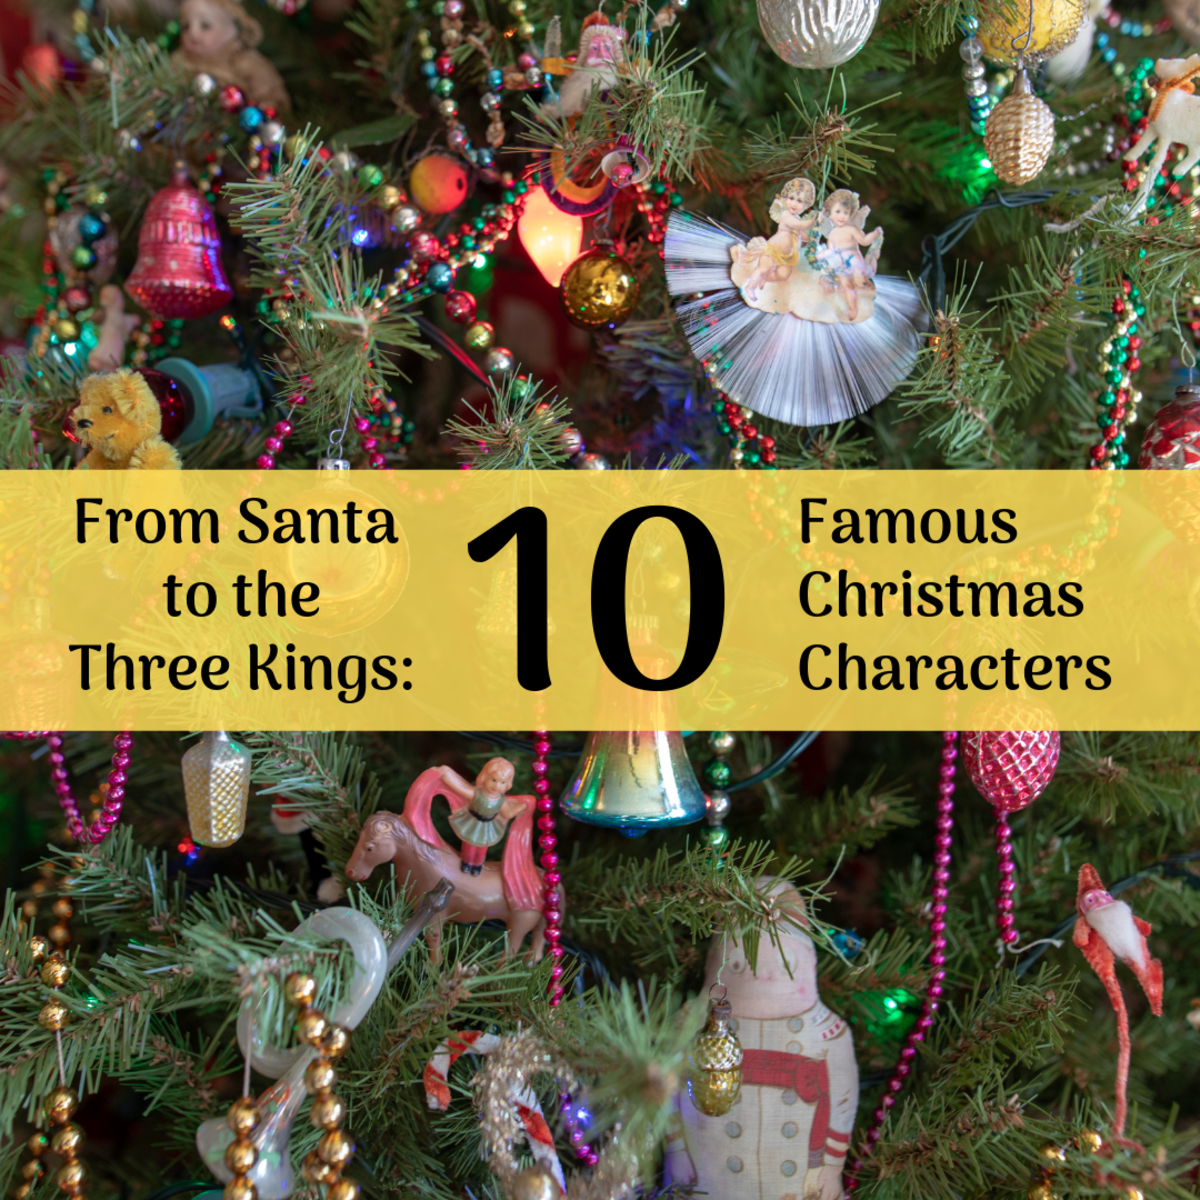 Learn about 10 famous Christmas characters from both religious and popular traditions.